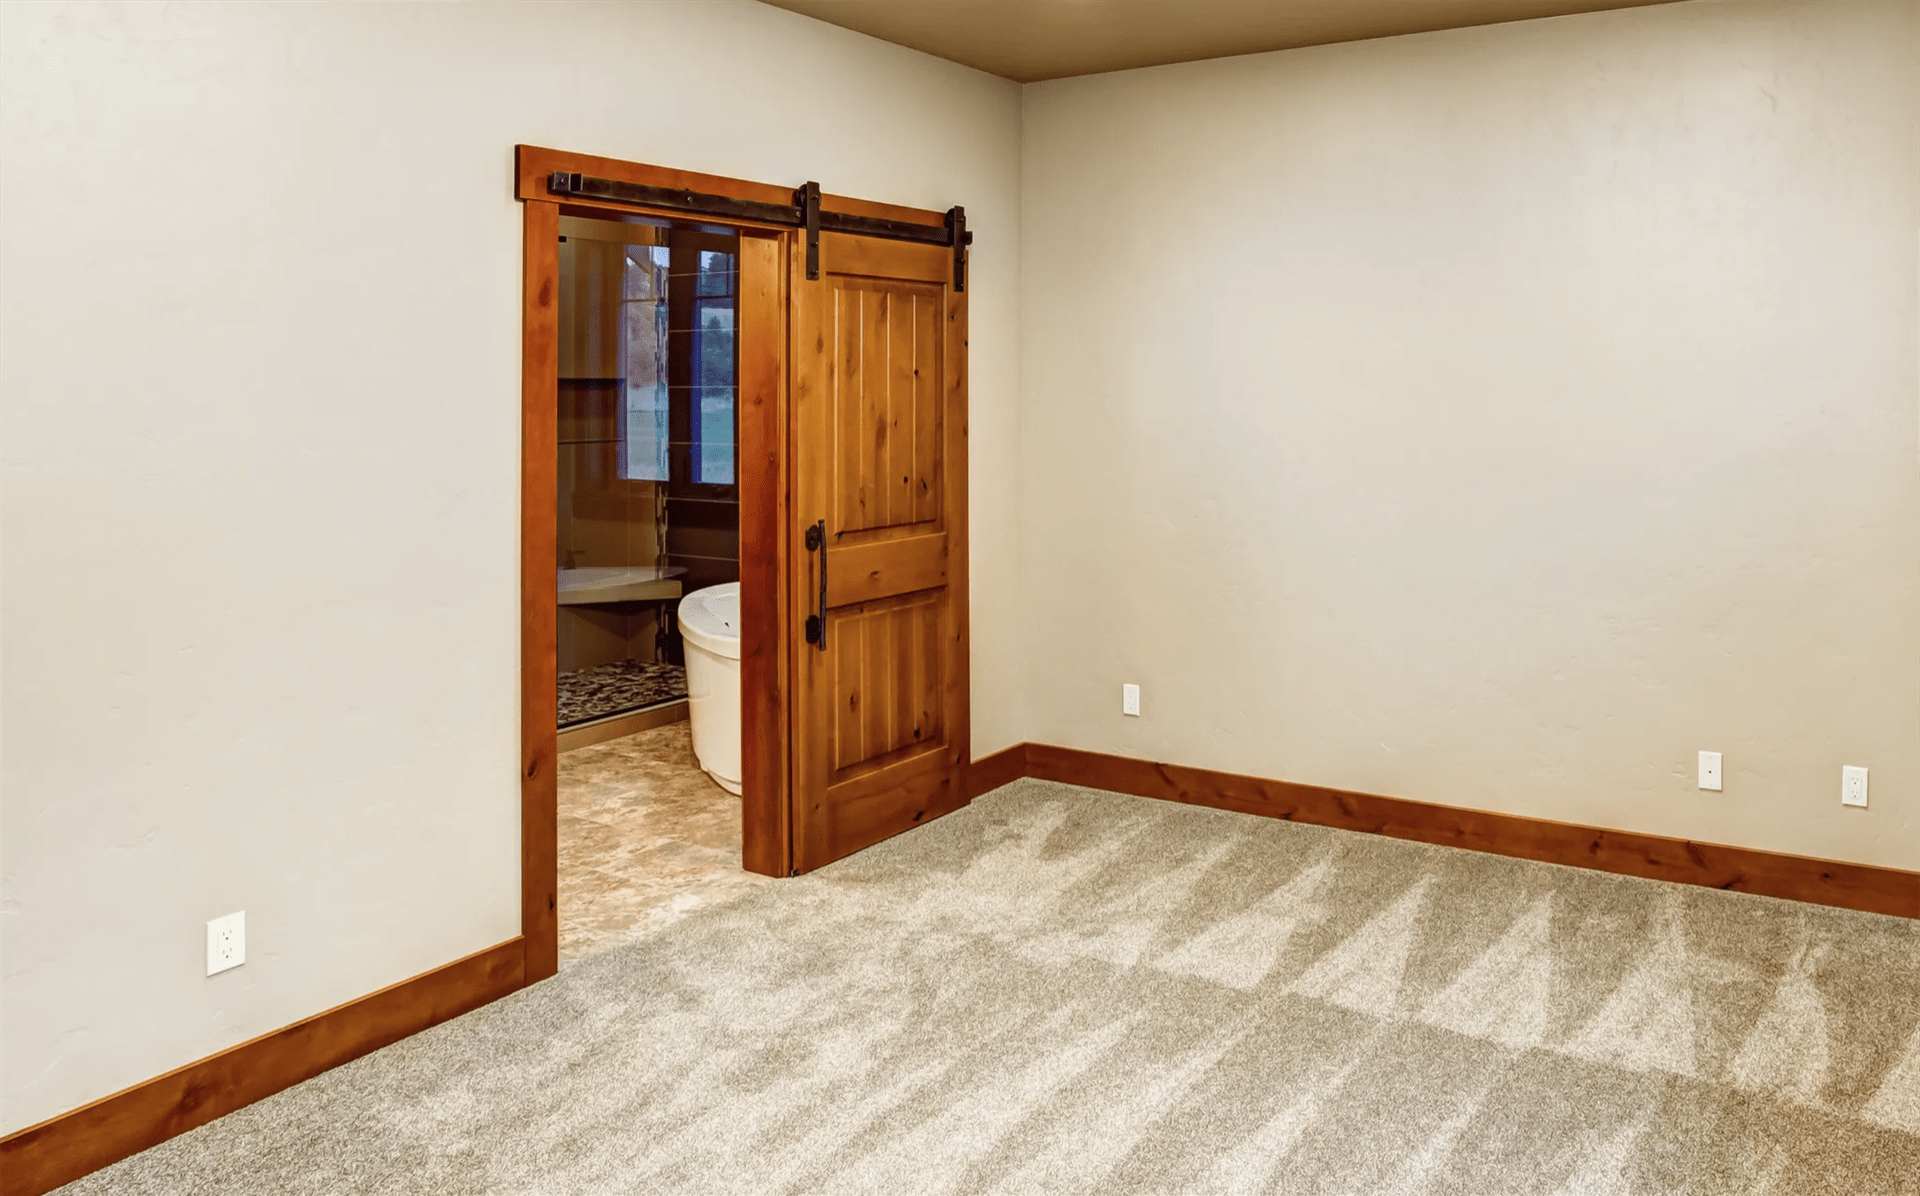 Carpet flooring from HomePort Interiors in Everson, WA